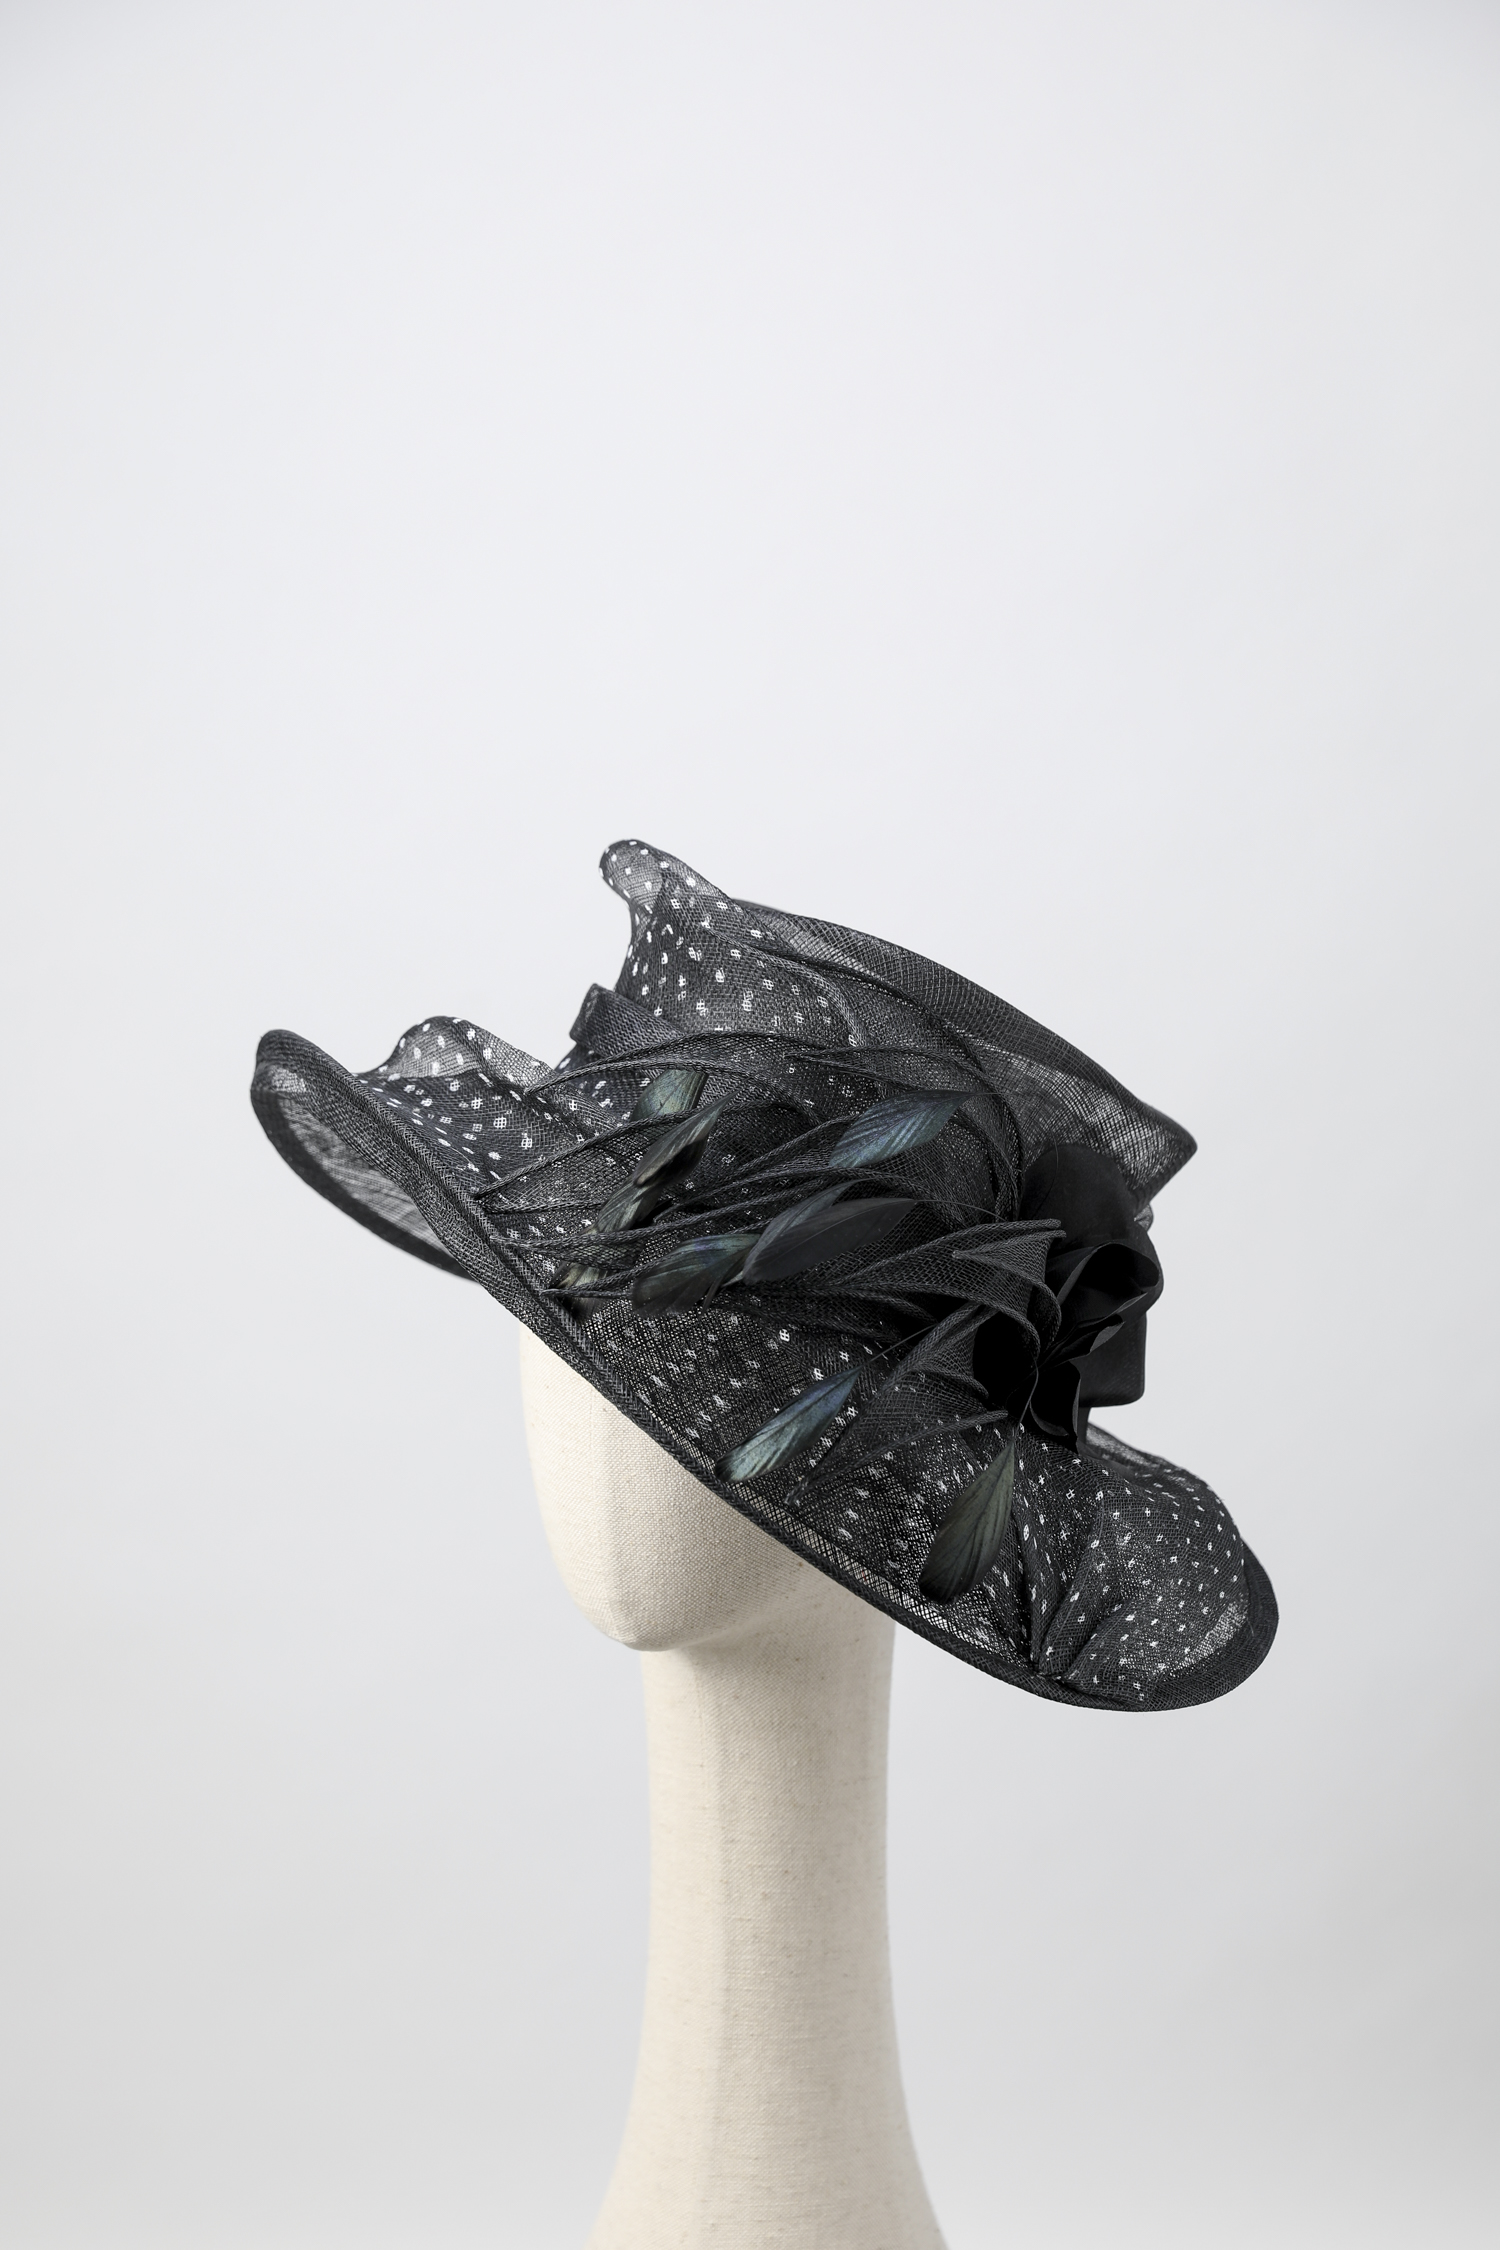 Copy of Jaycow Millinery by Jay Cheng Sample Stock 2019 (19).jpg